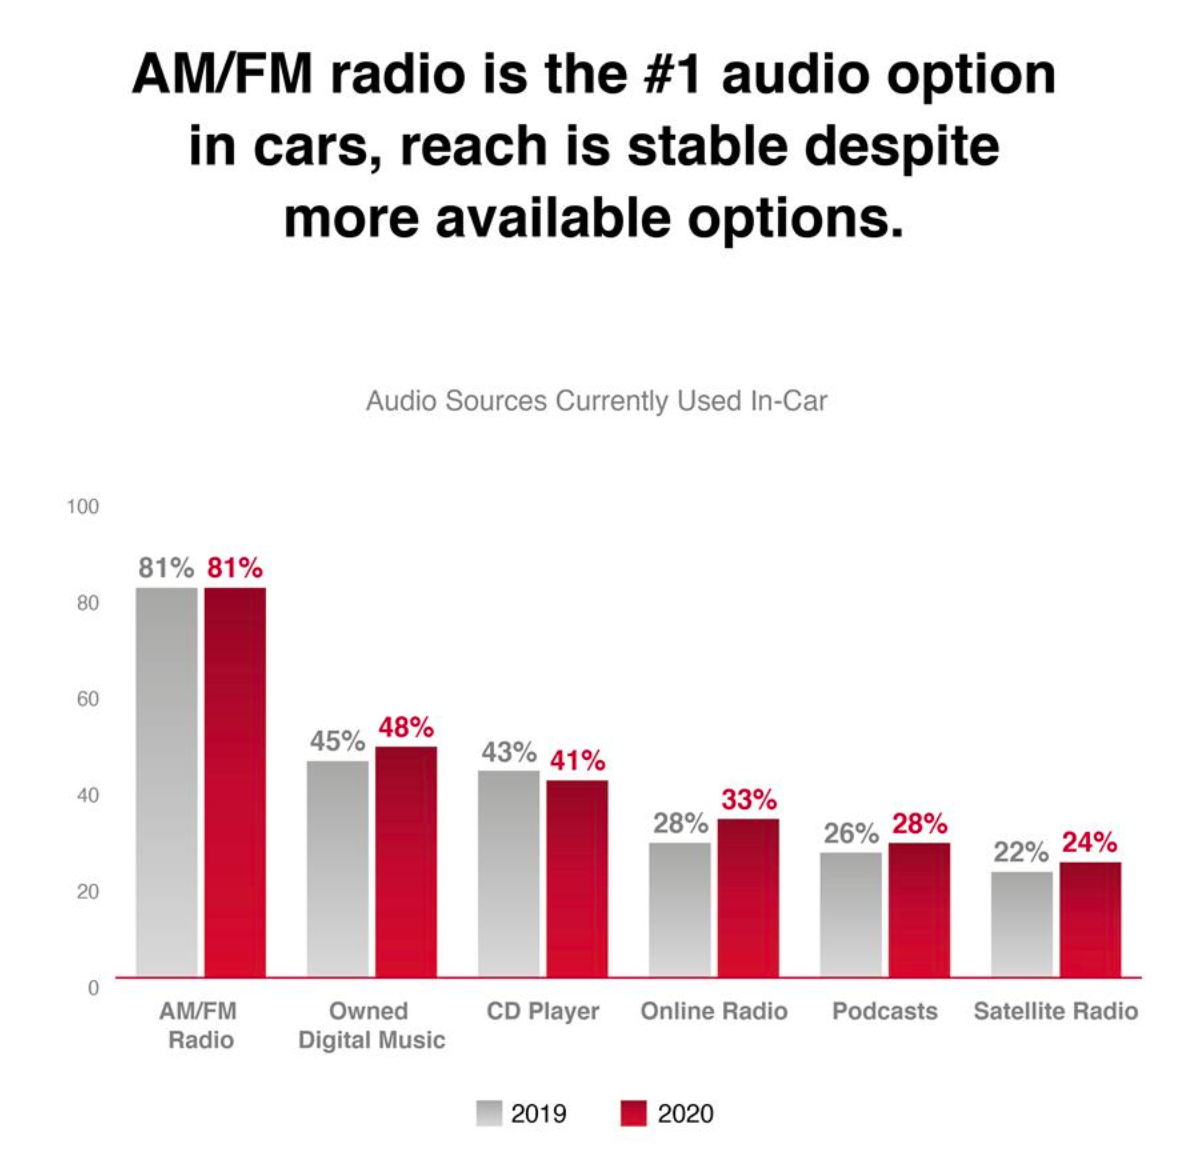 Bar graph that shows AM/FM radio is the #1 audio option in cars compared to owned music, CDs, online radio, podcasts, etc.